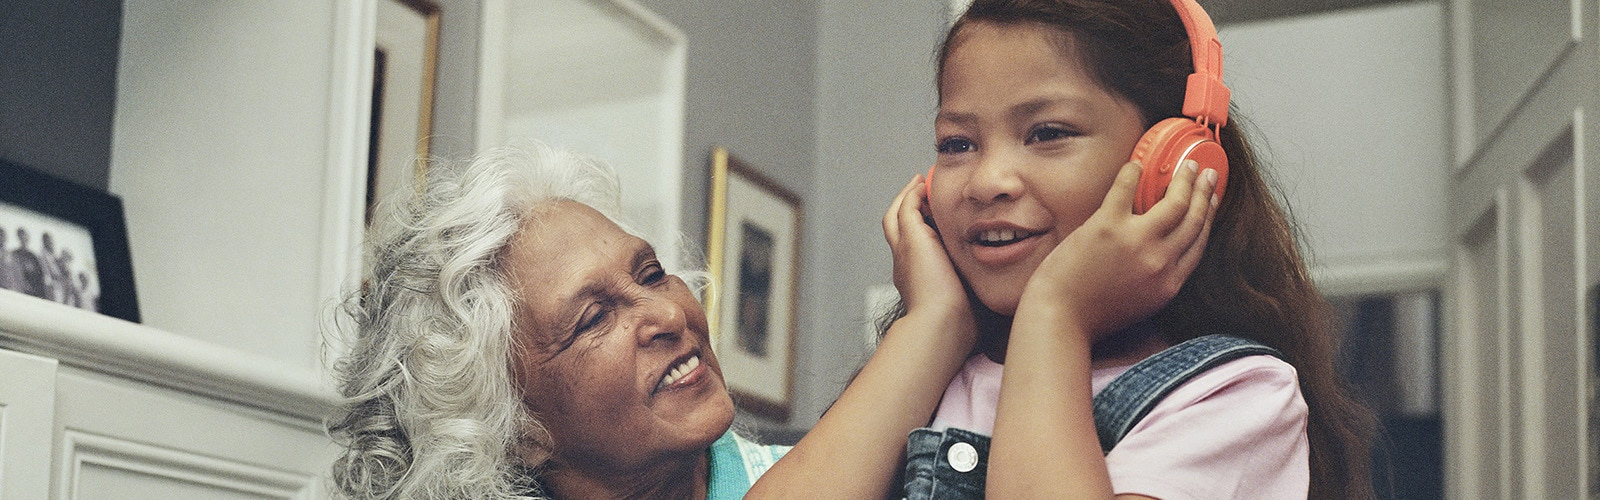 Elderly woman and young girl listening to music